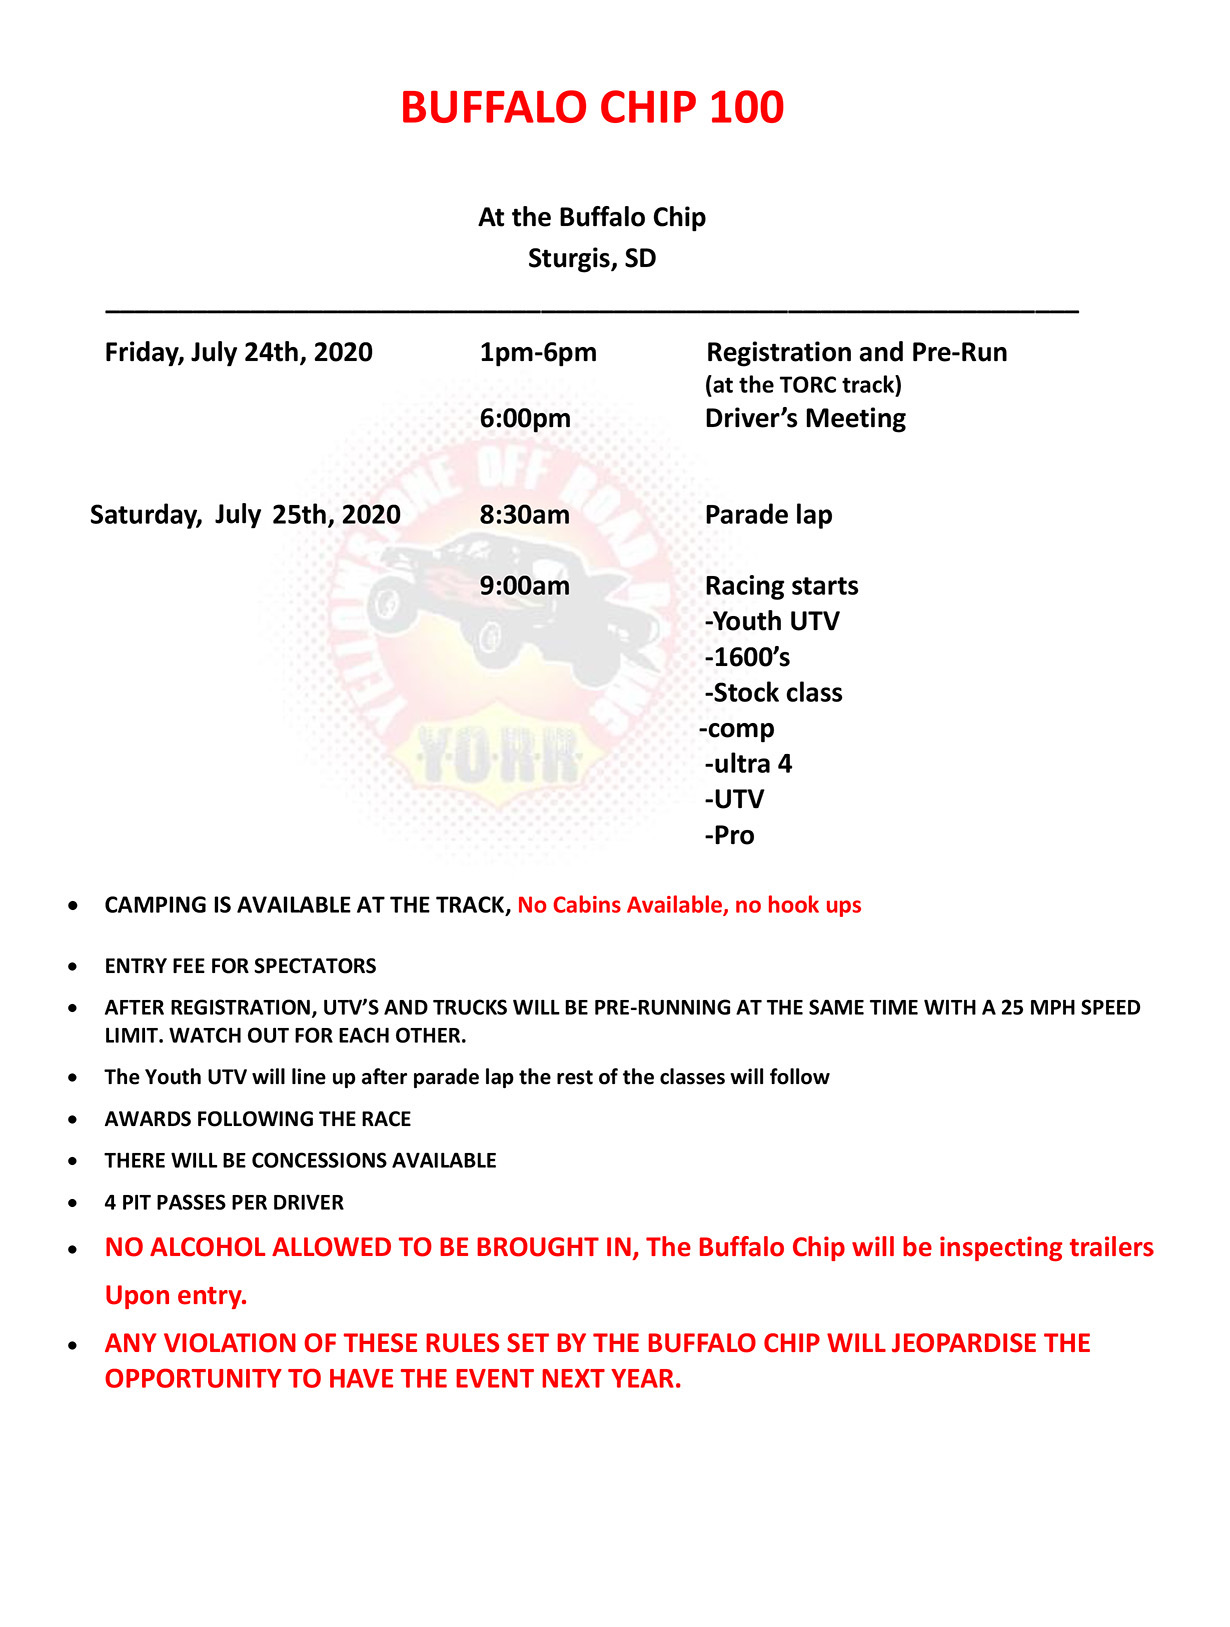 20200725 Buffalo Chip 100 Schedule Of Events